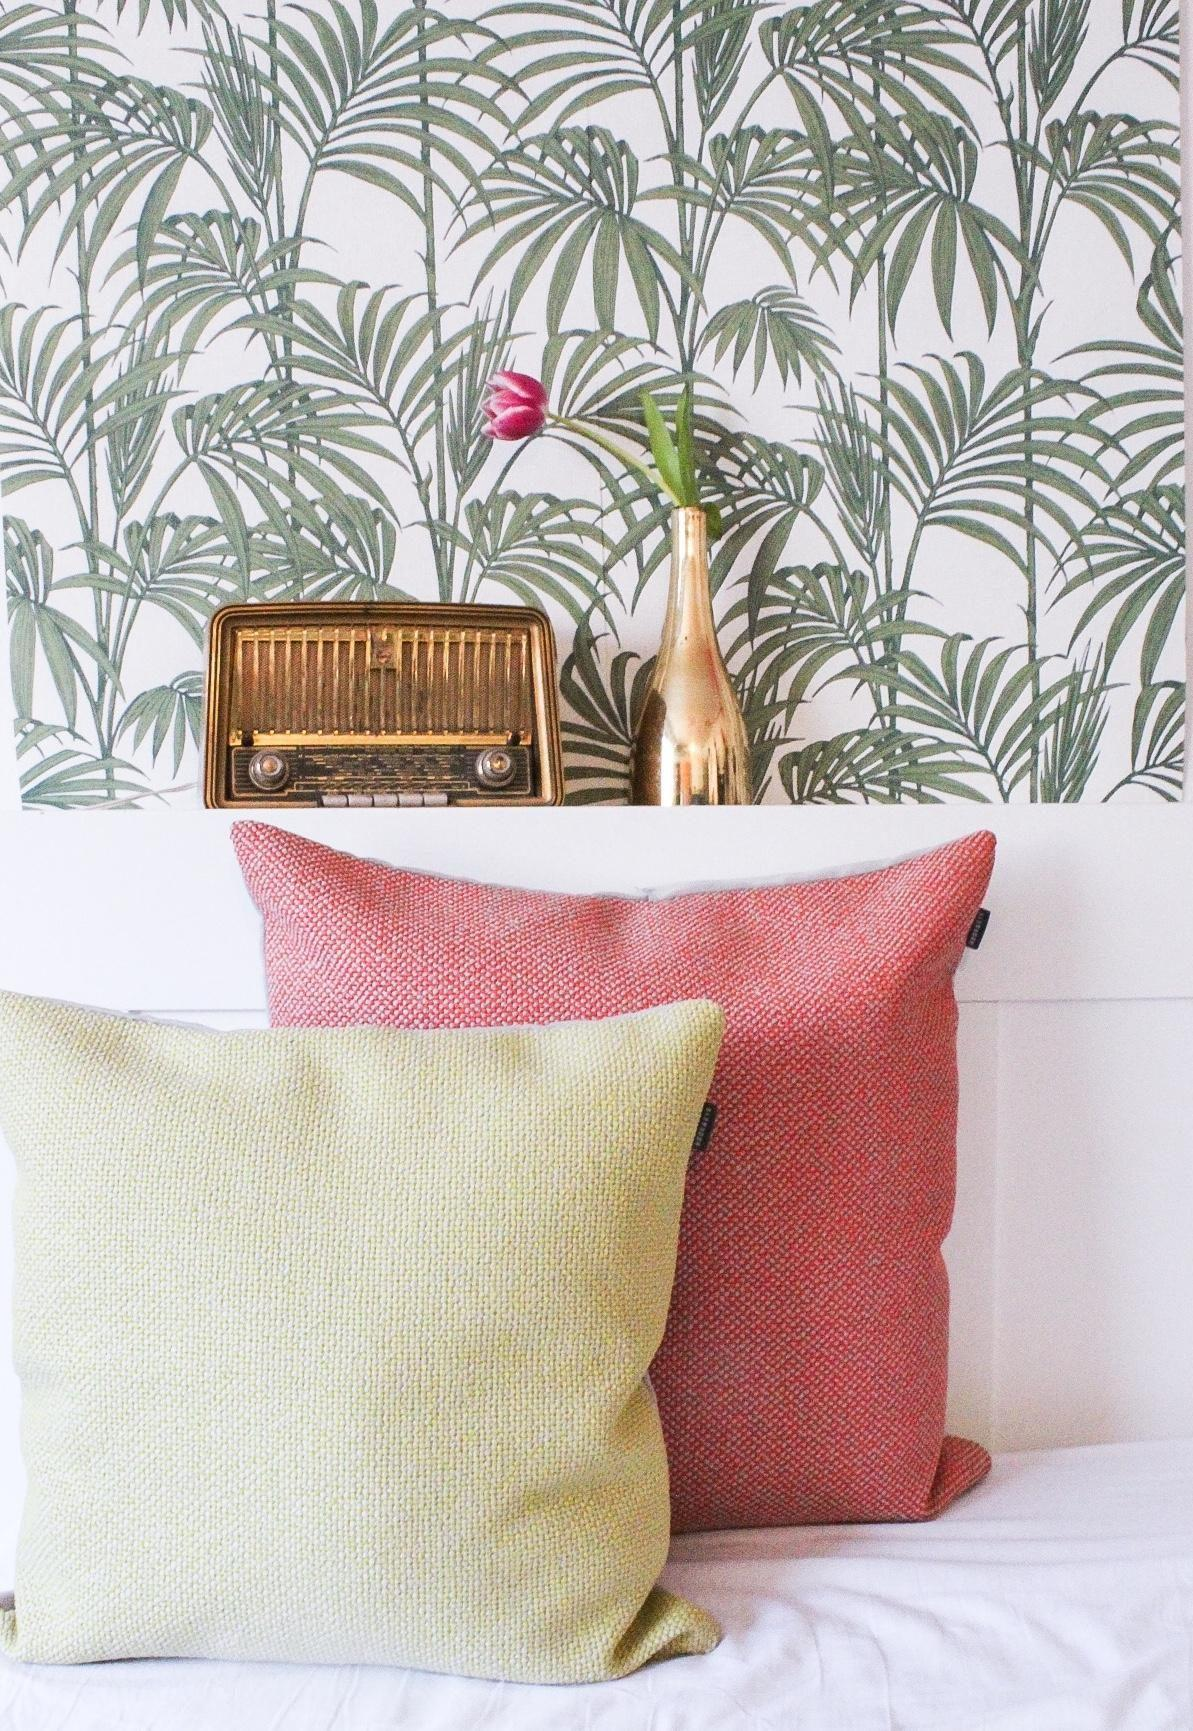 We like fancy wallpapers!